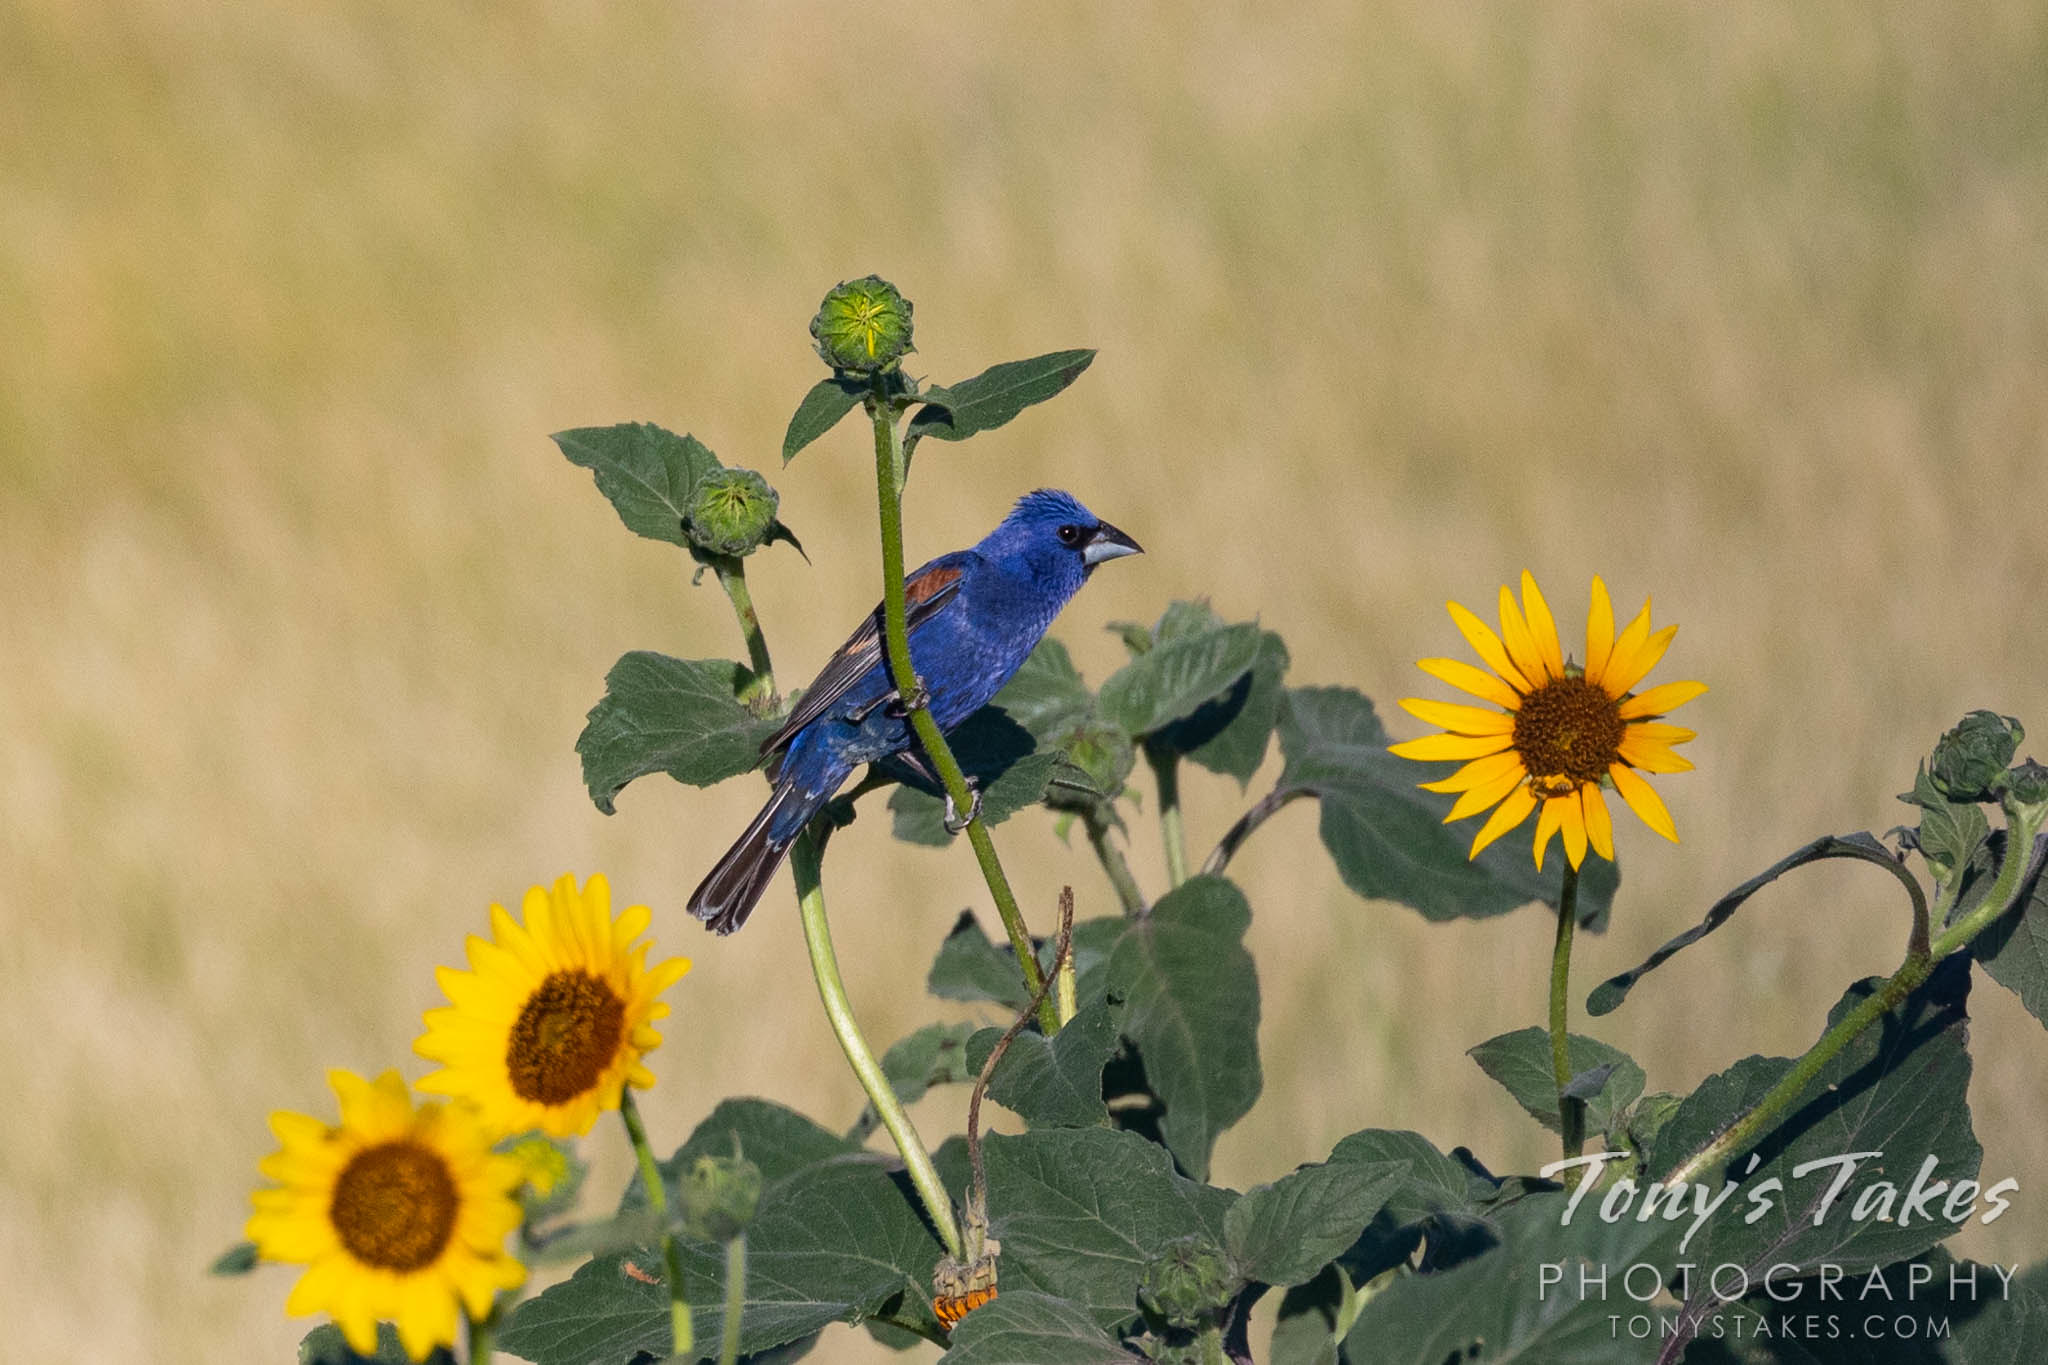 A blue grosbeak perches on some wild sunflowers. (© Tony's Takes)